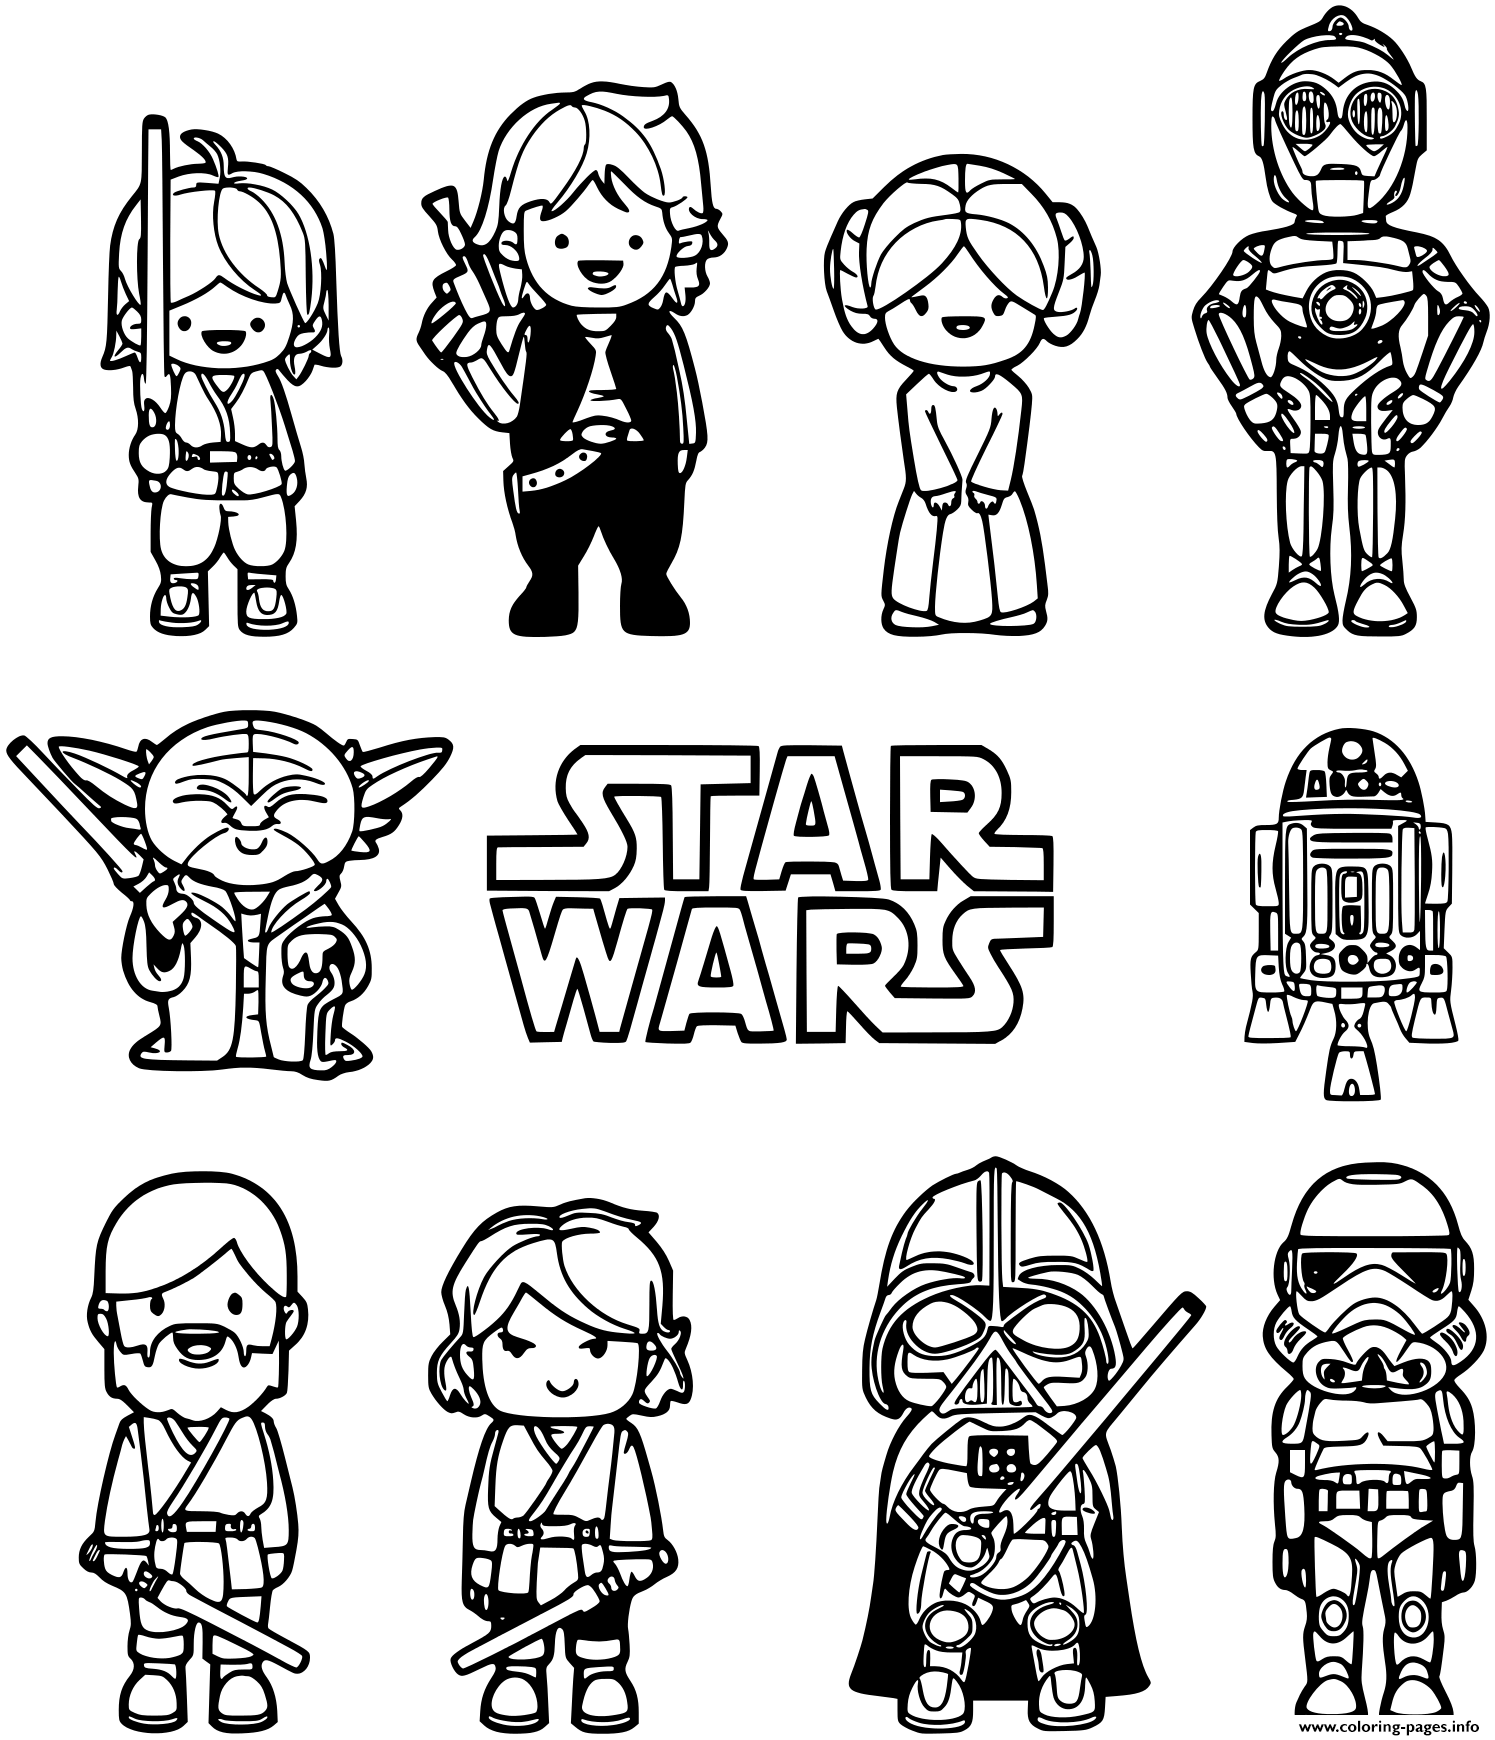 lego star wars pictures to print lego star wars unique elegant1 coloring pages printable print lego pictures wars to star